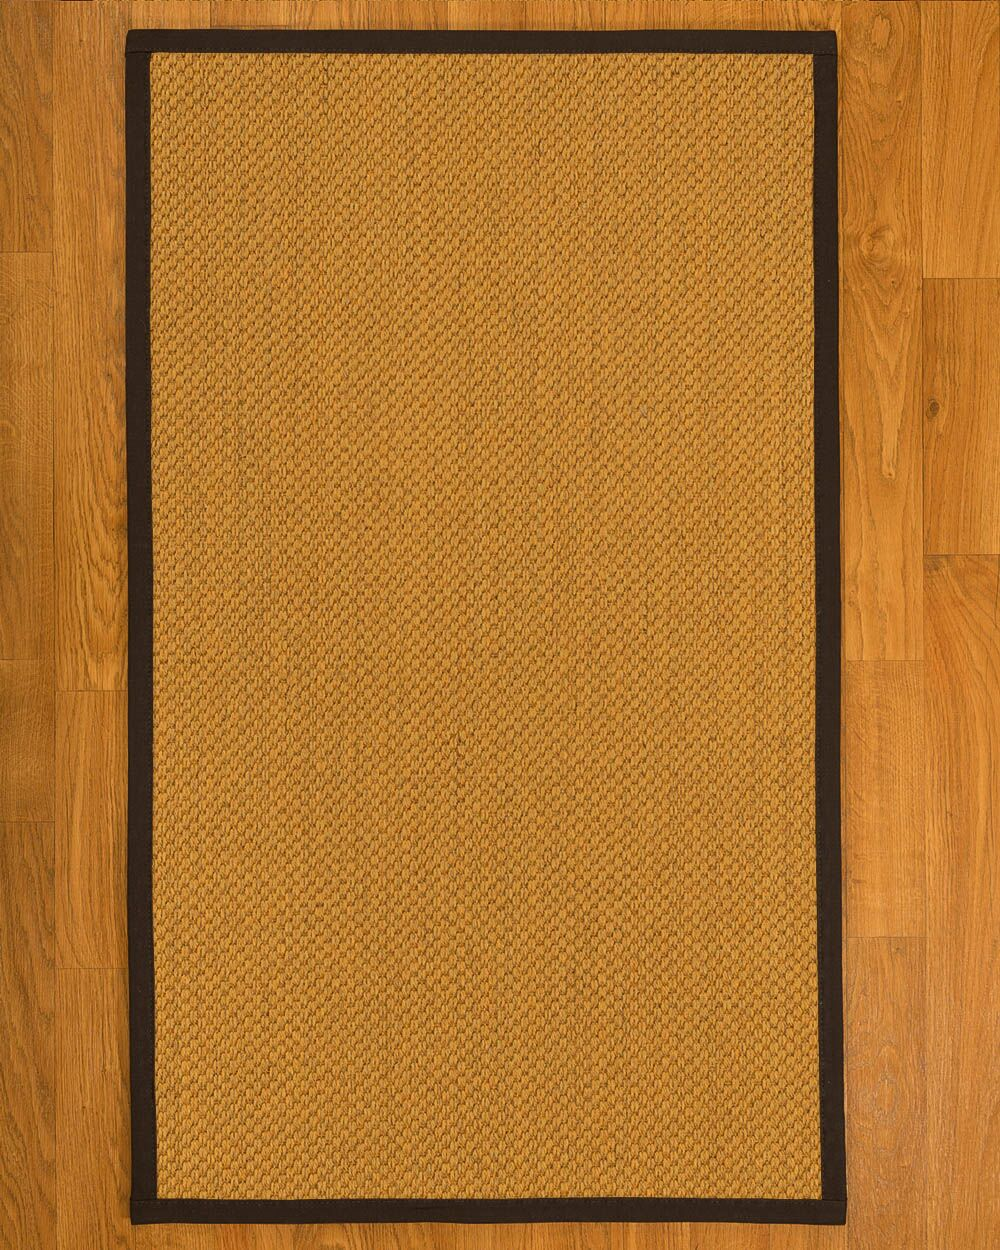 Aurora Hand Woven Rustic Fiber Sisal Brown/Fudge Area Rug Rug Size: Rectangle 3' x 5'